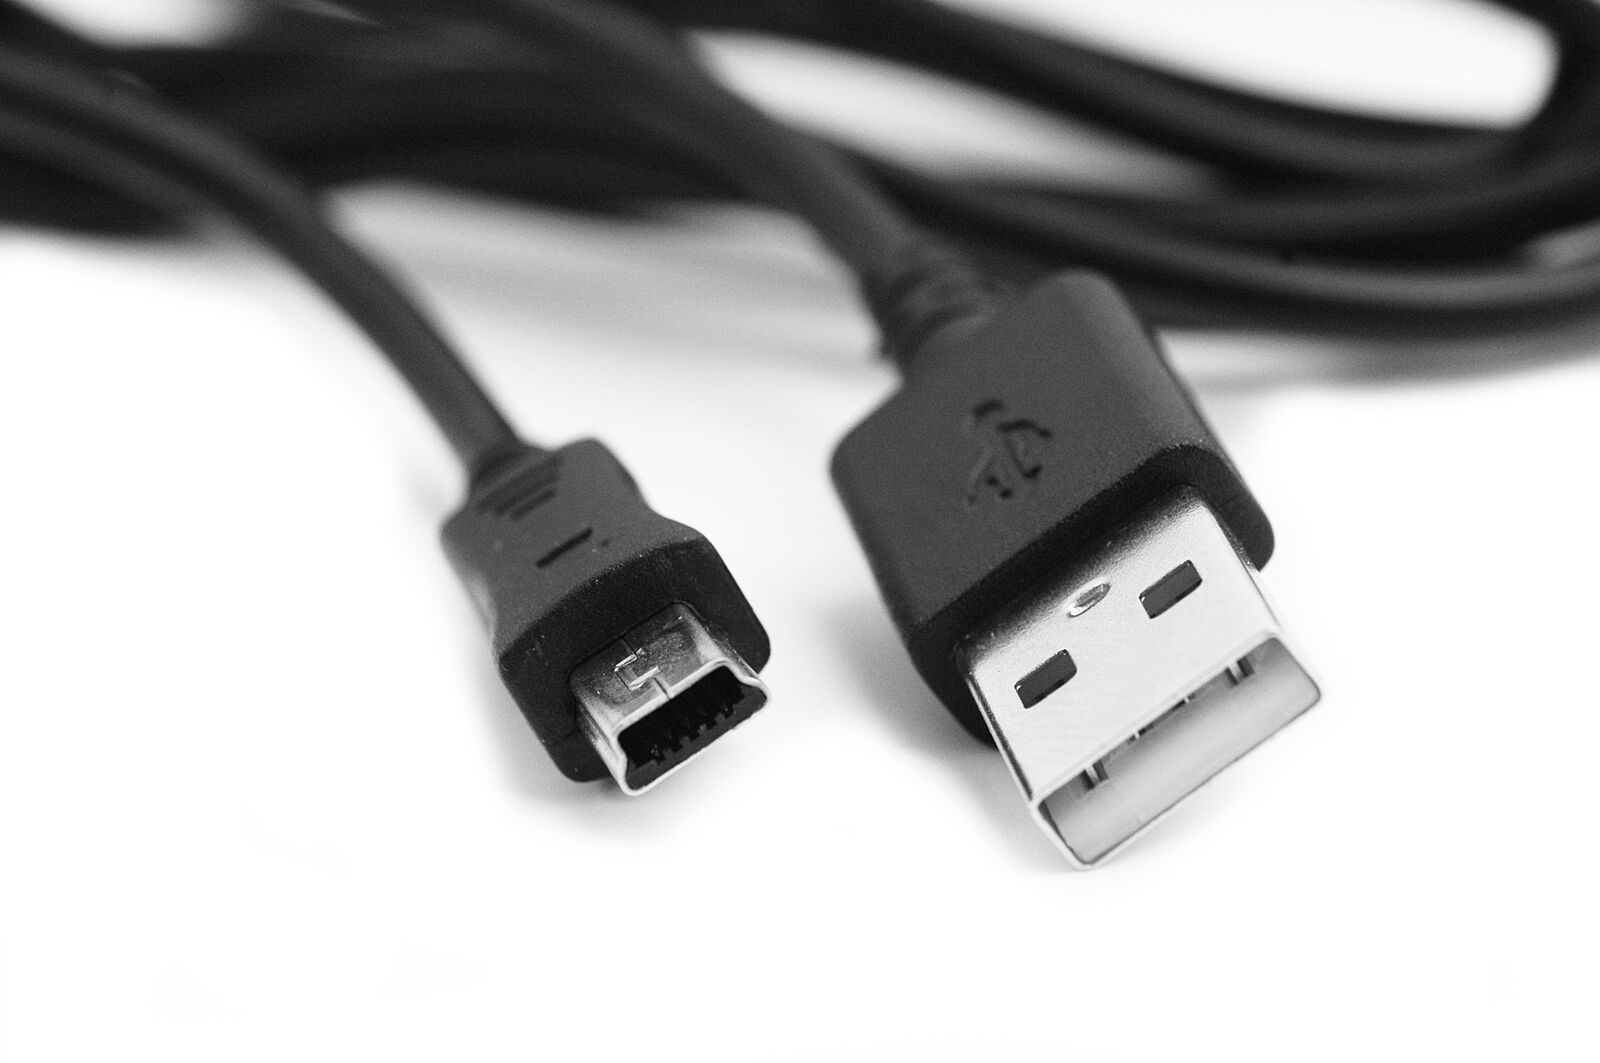 USB Data Charger Black Cable for Zoom G1on G10n Glon Effects Pedal